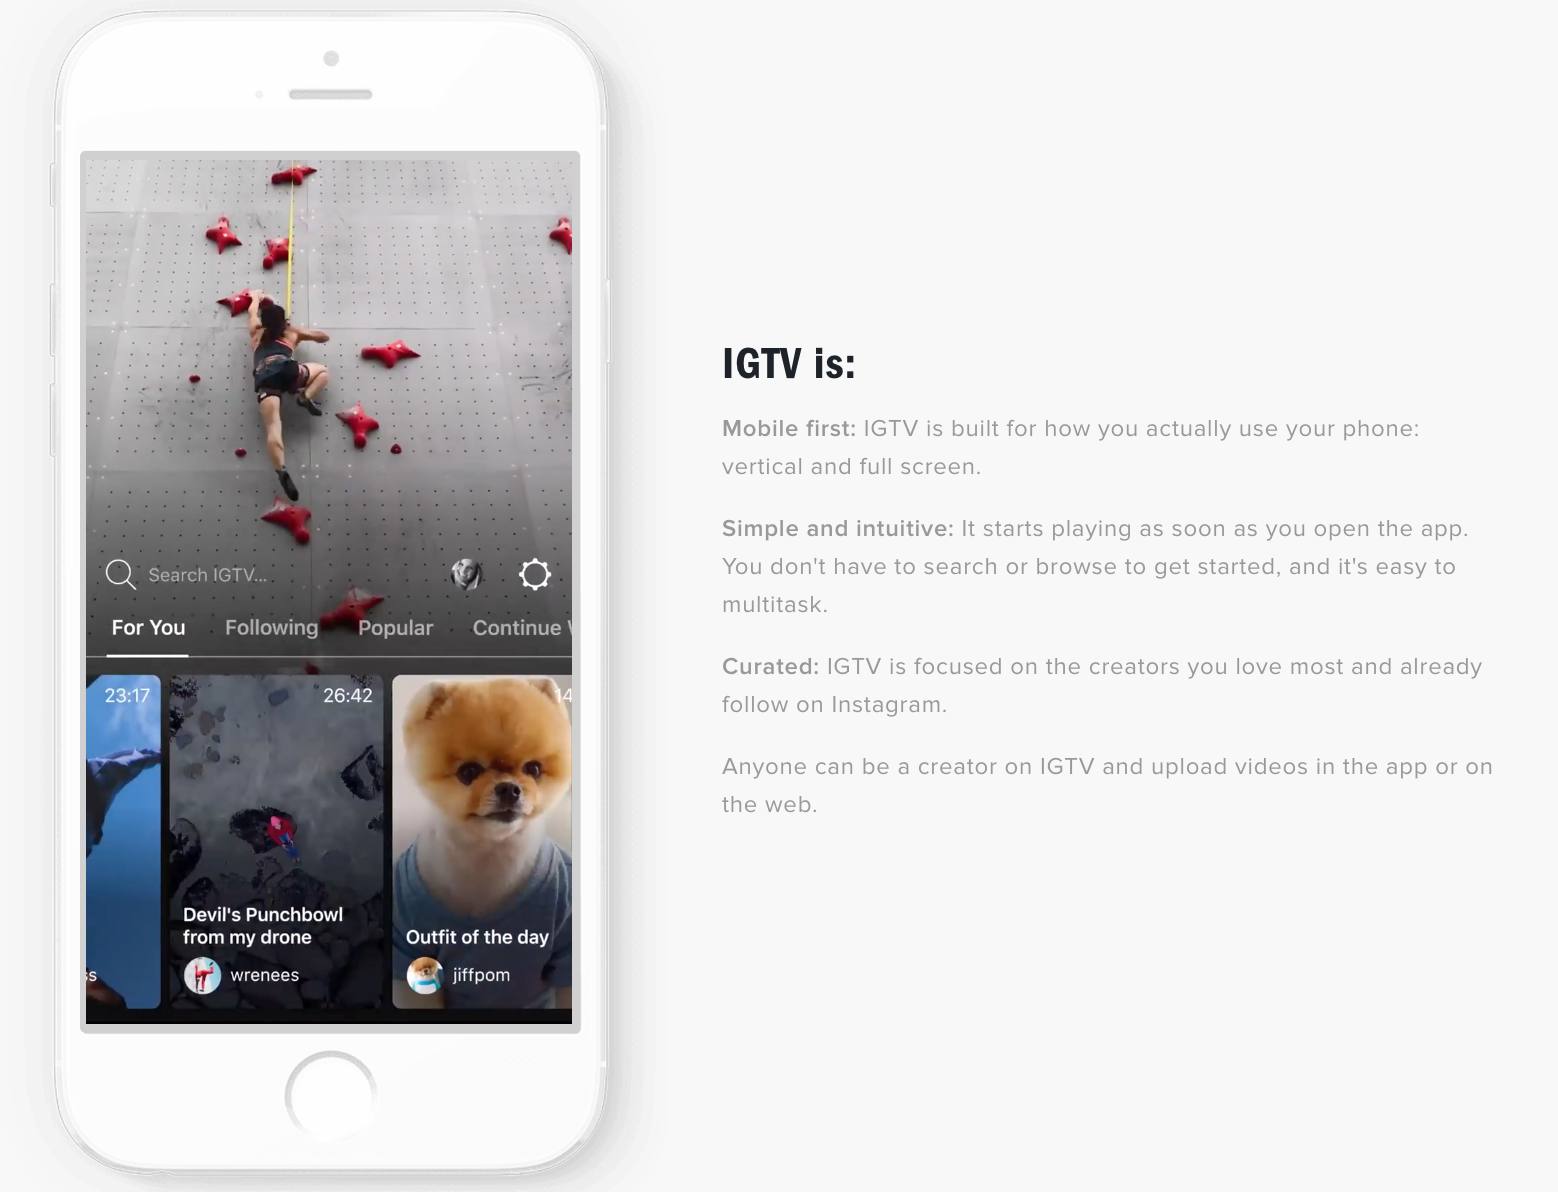 Instagram creates an IGTV feature that will lead all social media